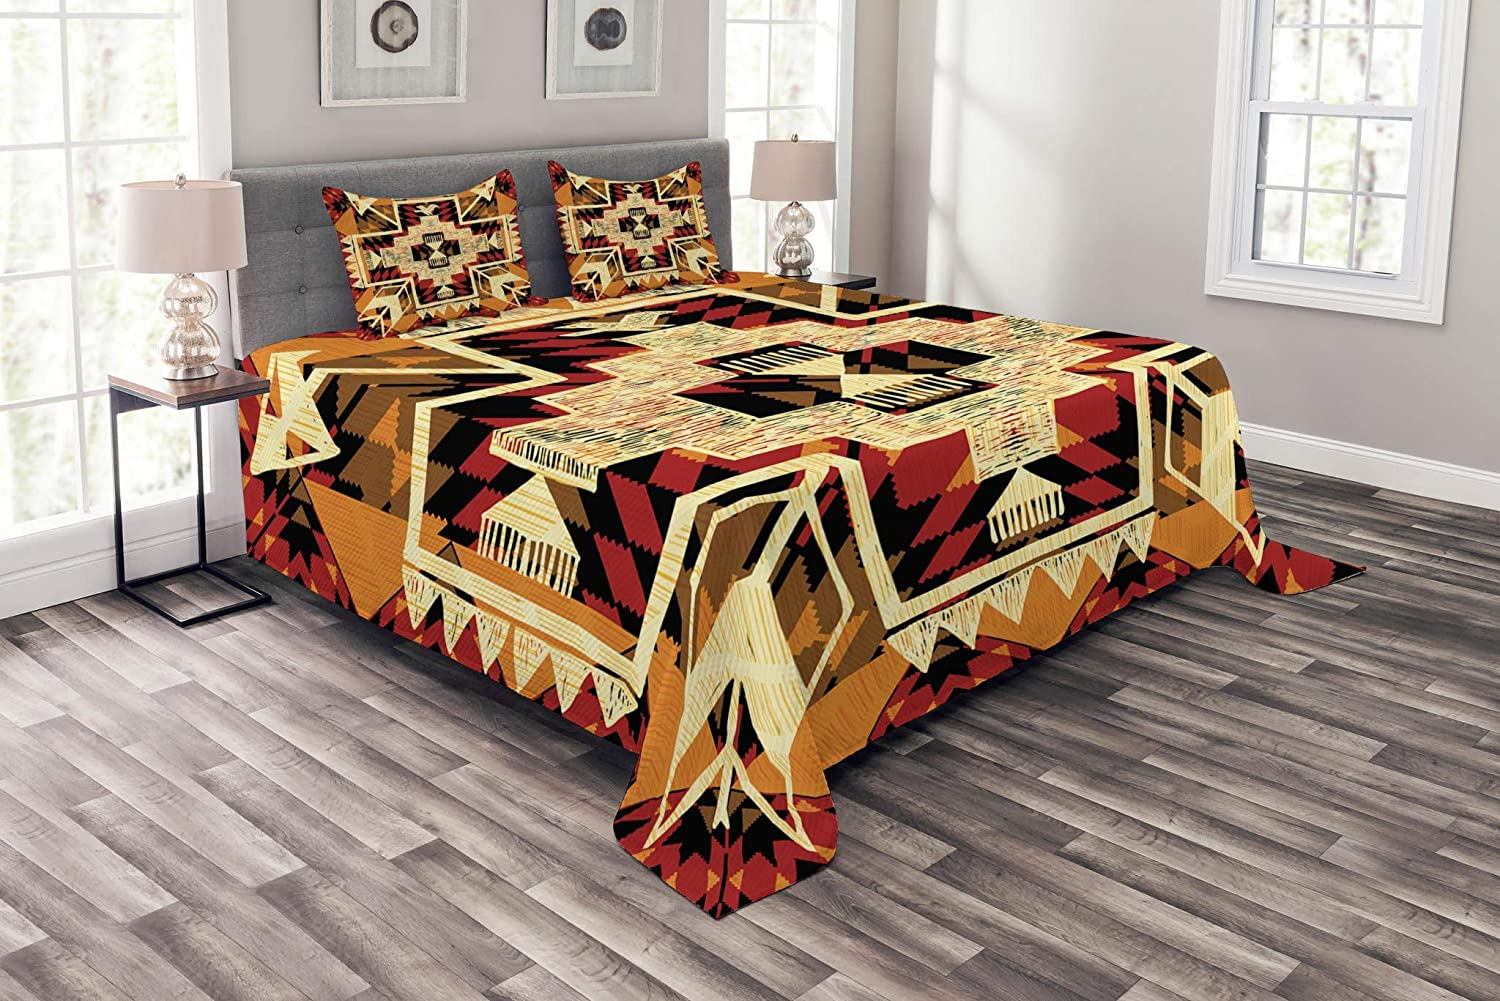 Ambesonne Arrow Bedspread, Inspired Pattern Graphic Design Abstract Art Earth Tones, Decorative Quilted 3 Piece Coverlet Set